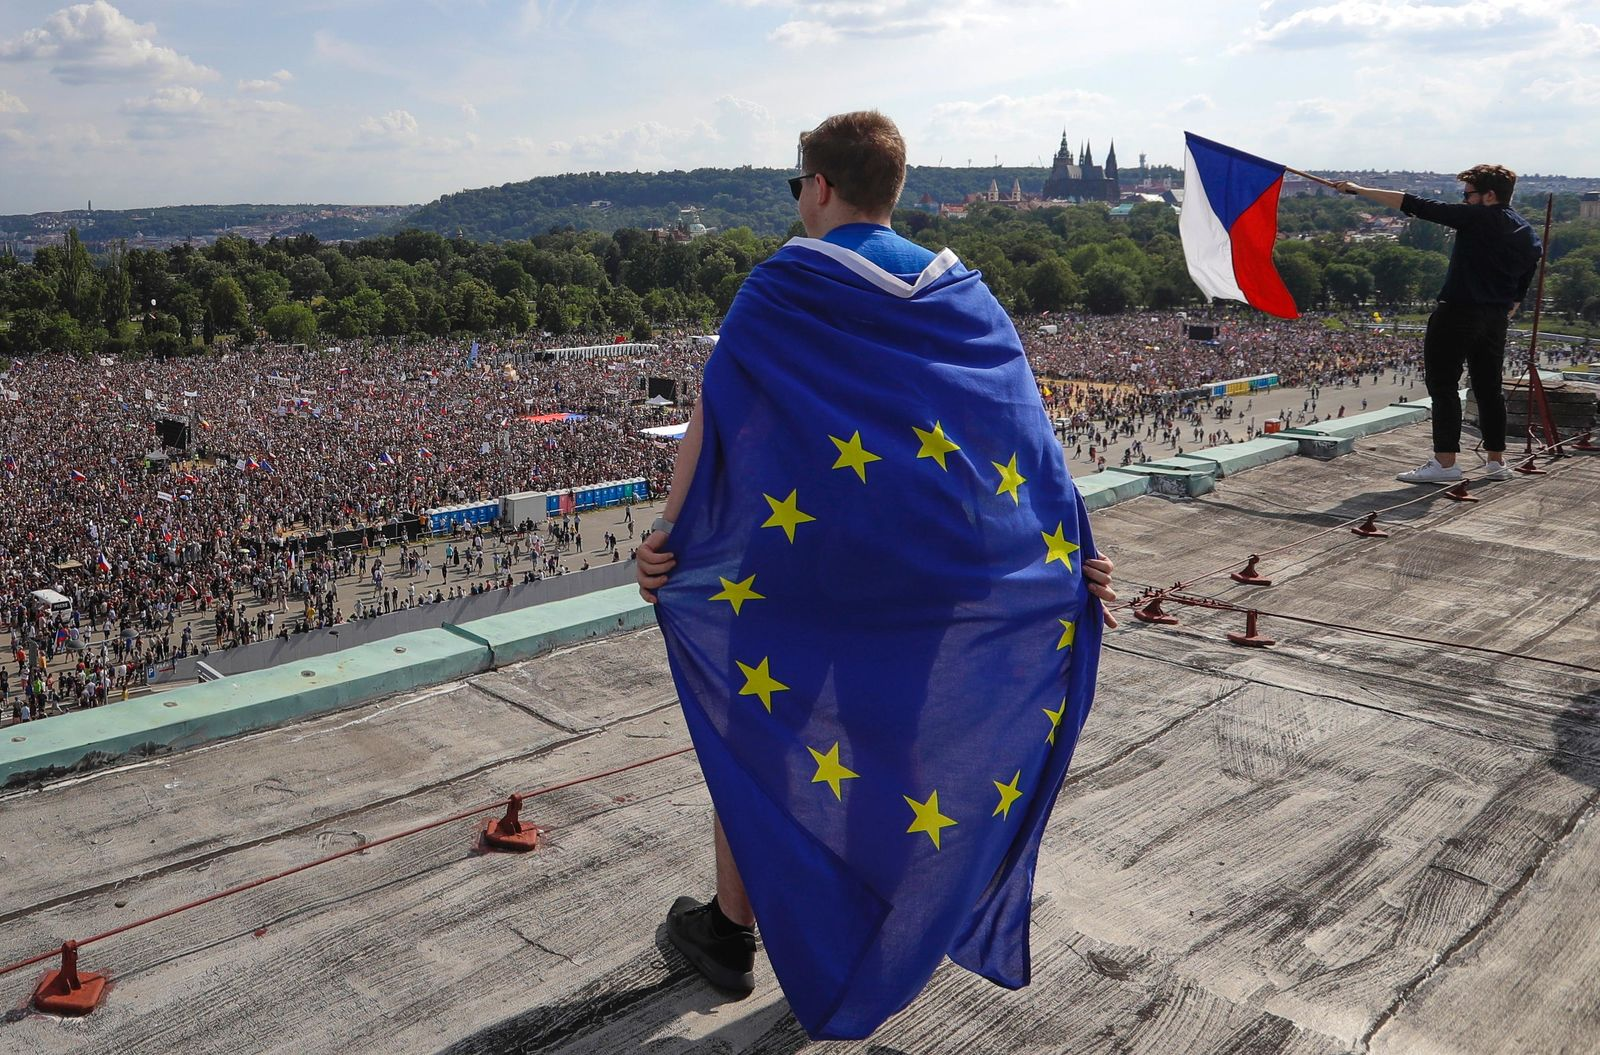 A man wrapped in a European Union flag watches protesters gather in Prague, Czech Republic, Sunday, June 23, 2019. Protesters are on calling on Czech Prime Minister Andrej Babis to step down over fraud allegations and subsidies paid to his former companies. (AP Photo/Petr David Josek)